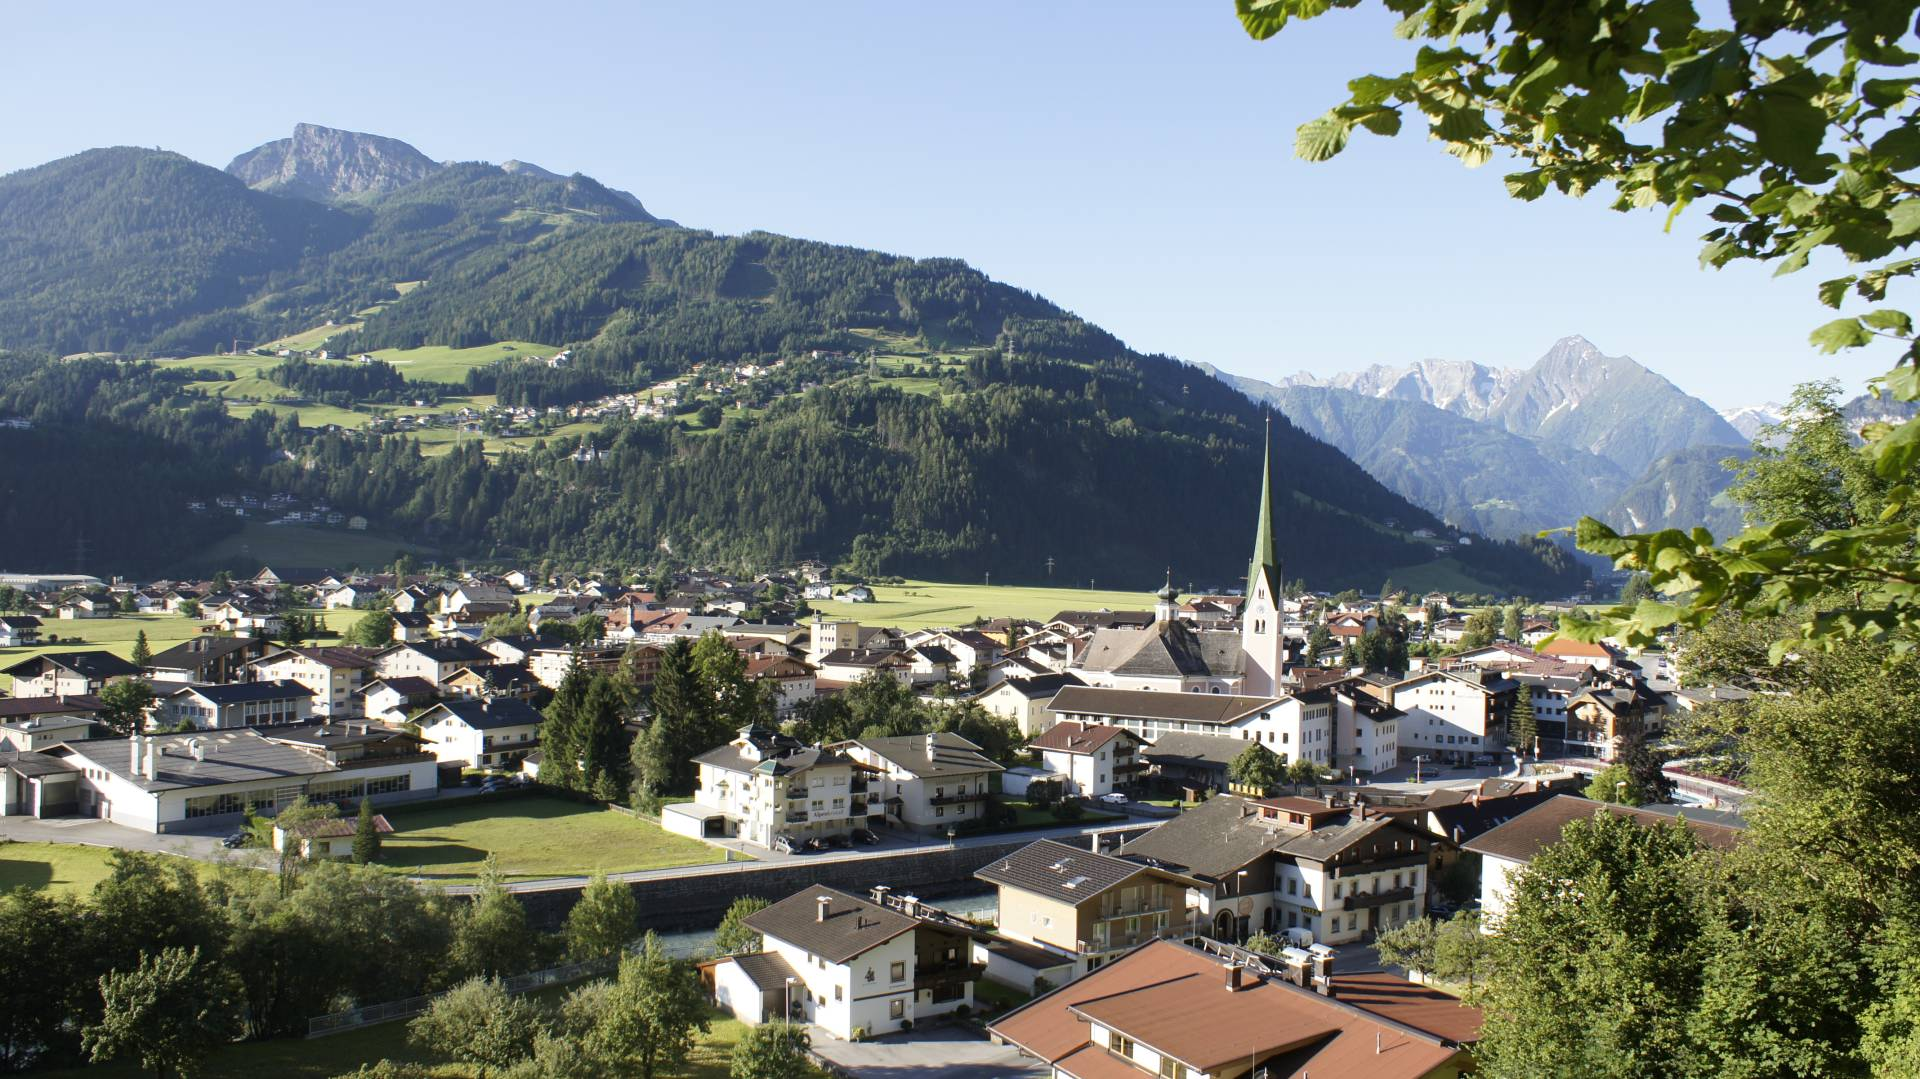 View of the town of Zell am Ziller in summer